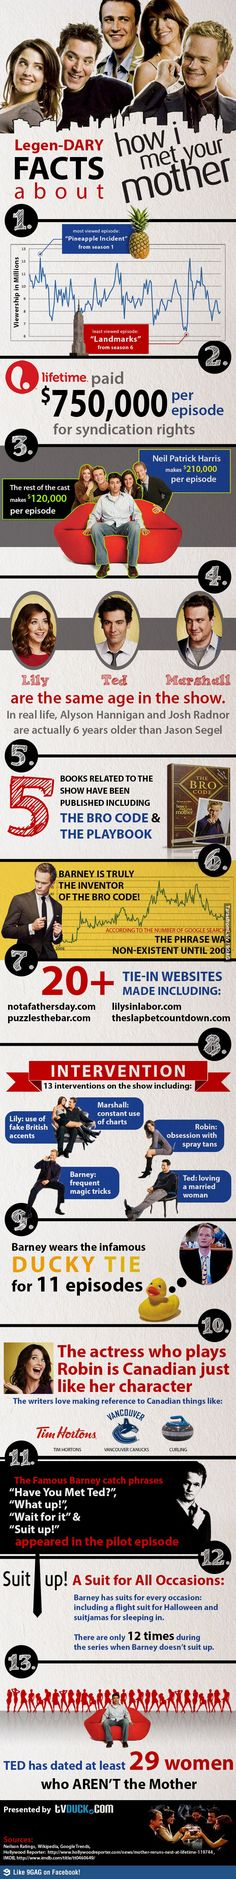 Legen-wait for it-dary statistics!